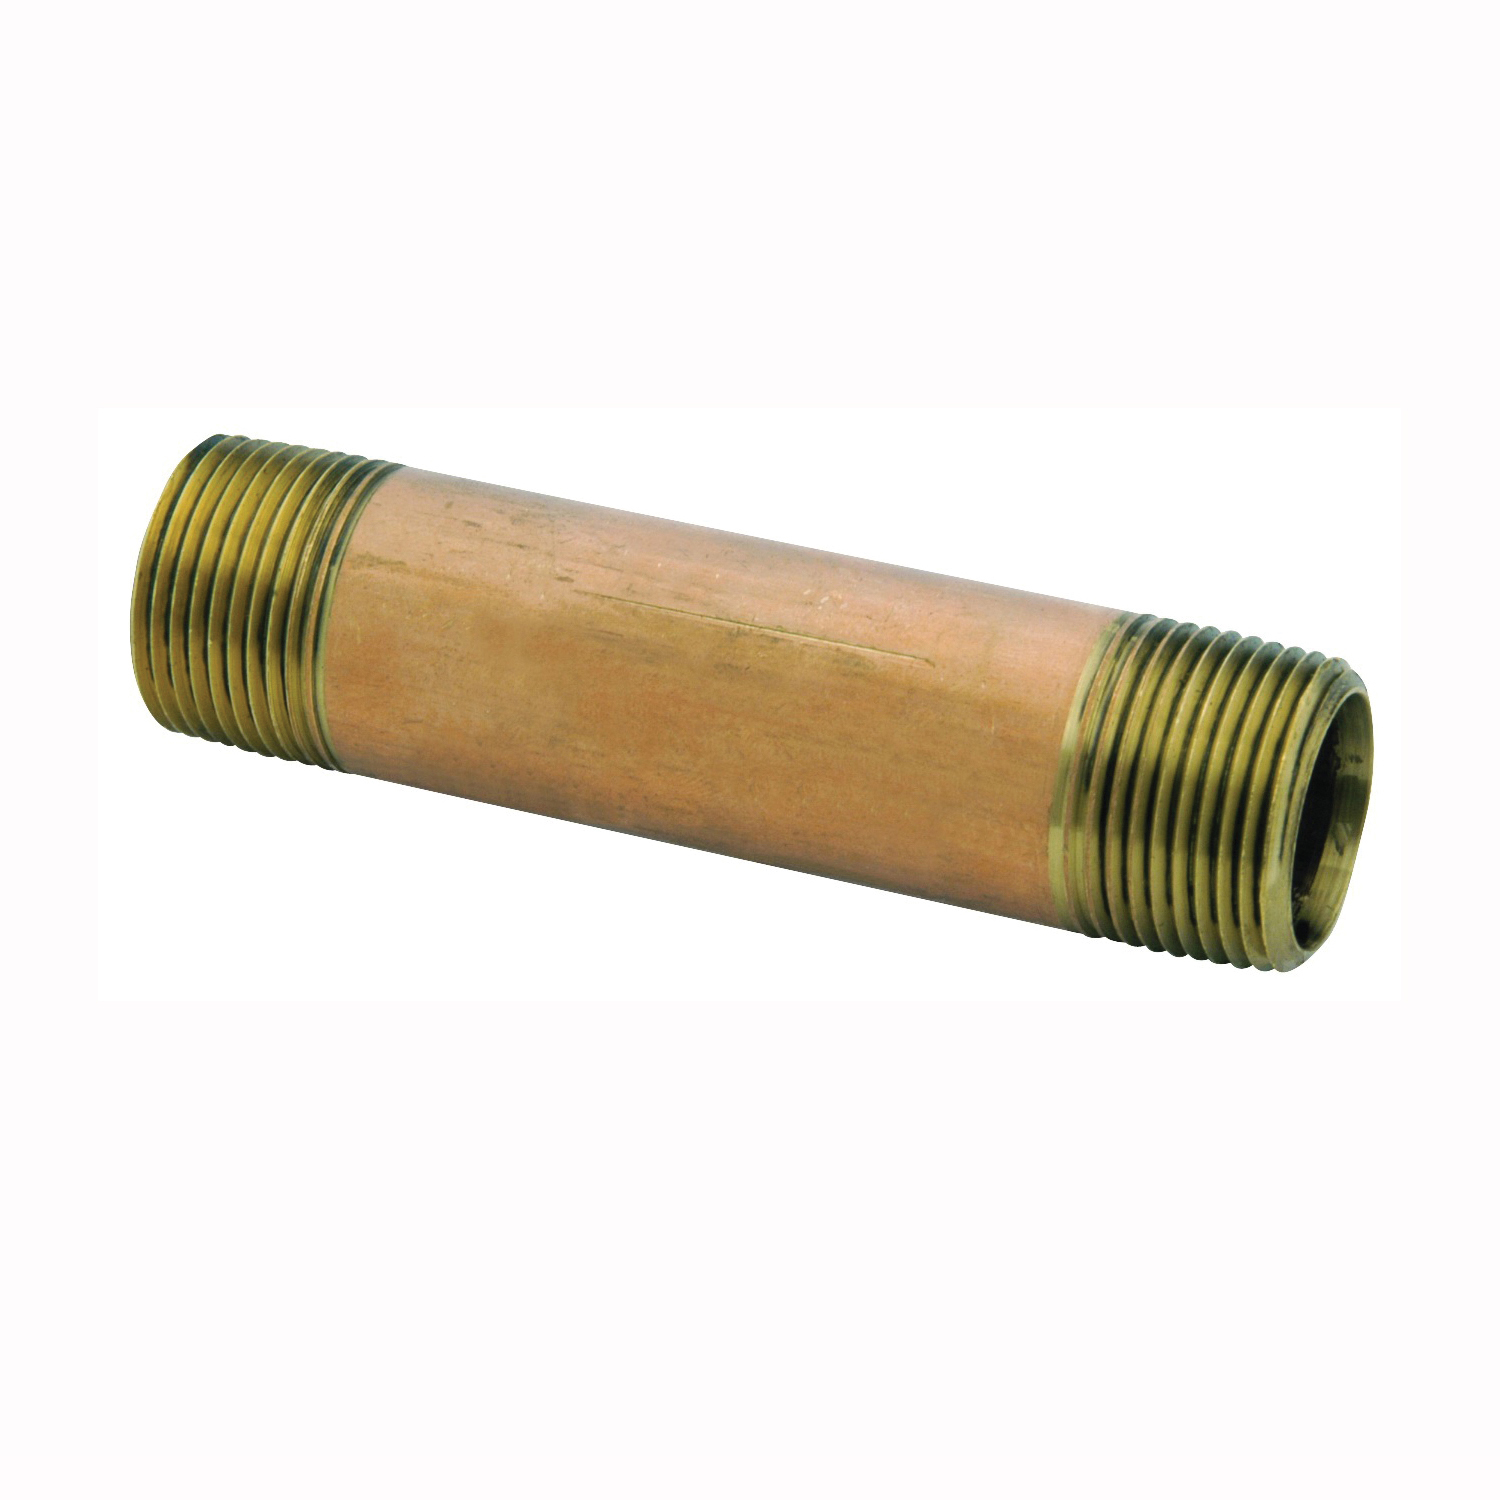 Picture of Anderson Metals 38300-0460 Pipe Nipple, 1/4 in, NPT, Brass, 870 psi Pressure, 6 in L